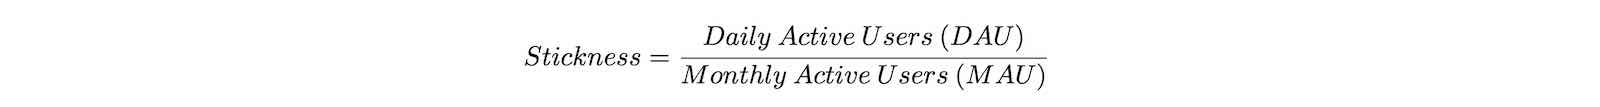 aily Active Users (DAU) / Monthly Active Users (MAU)